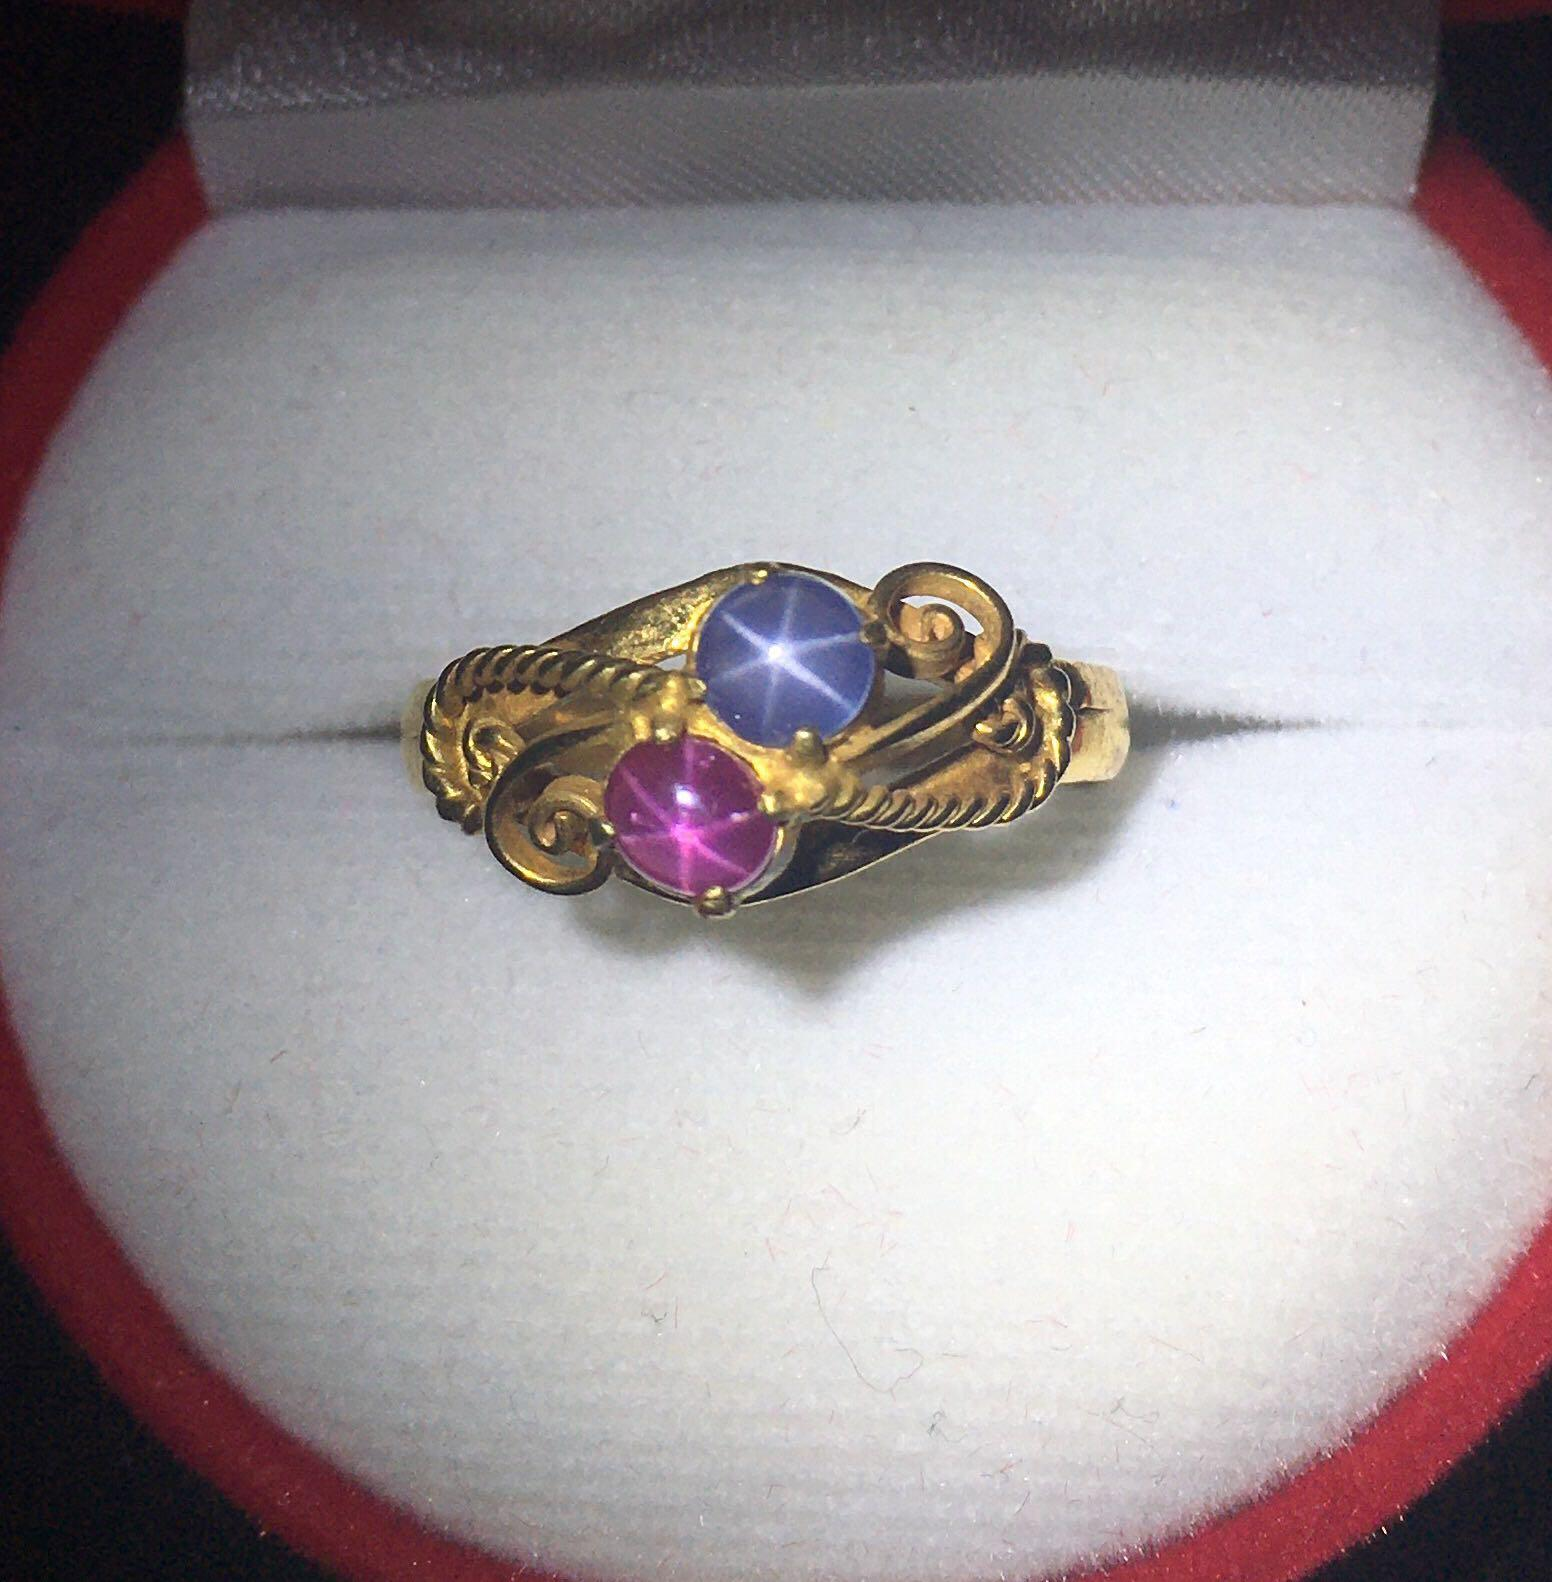 SALE!!!0.80 Cts Burma Star Ruby and Star Sapphire Ring